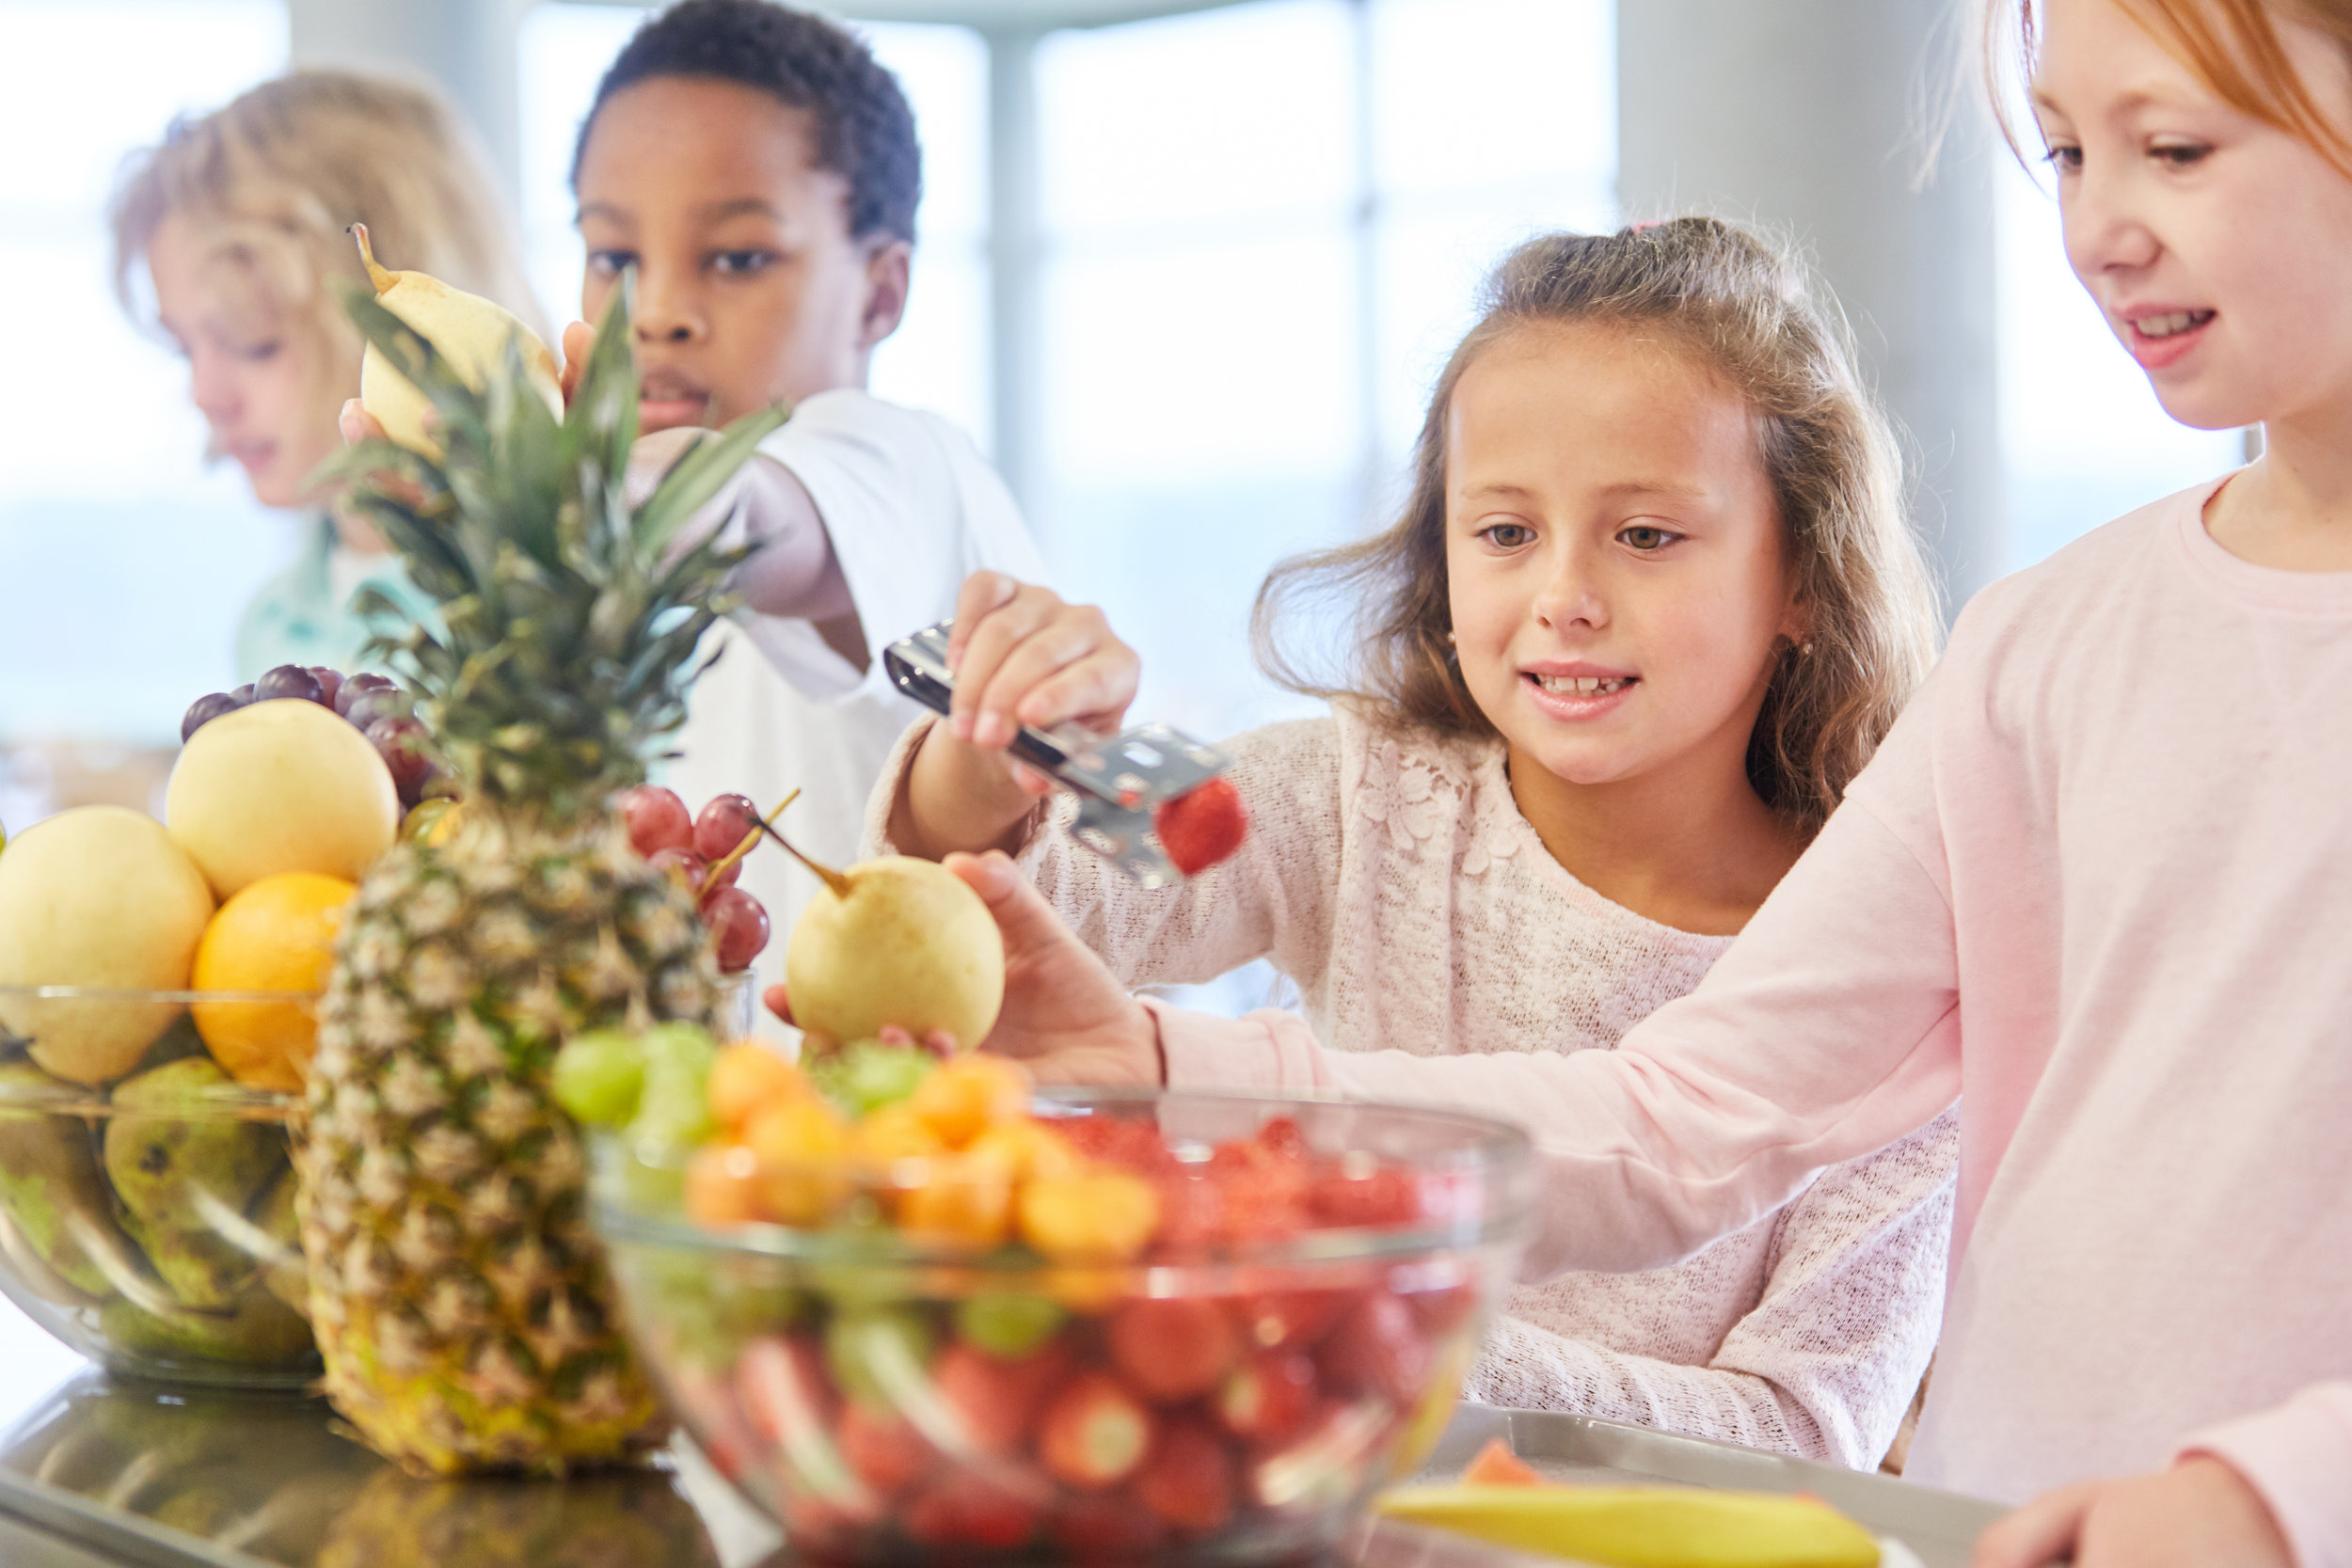 bigstock-Children-at-the-canteen-cafete-247810786.jpg